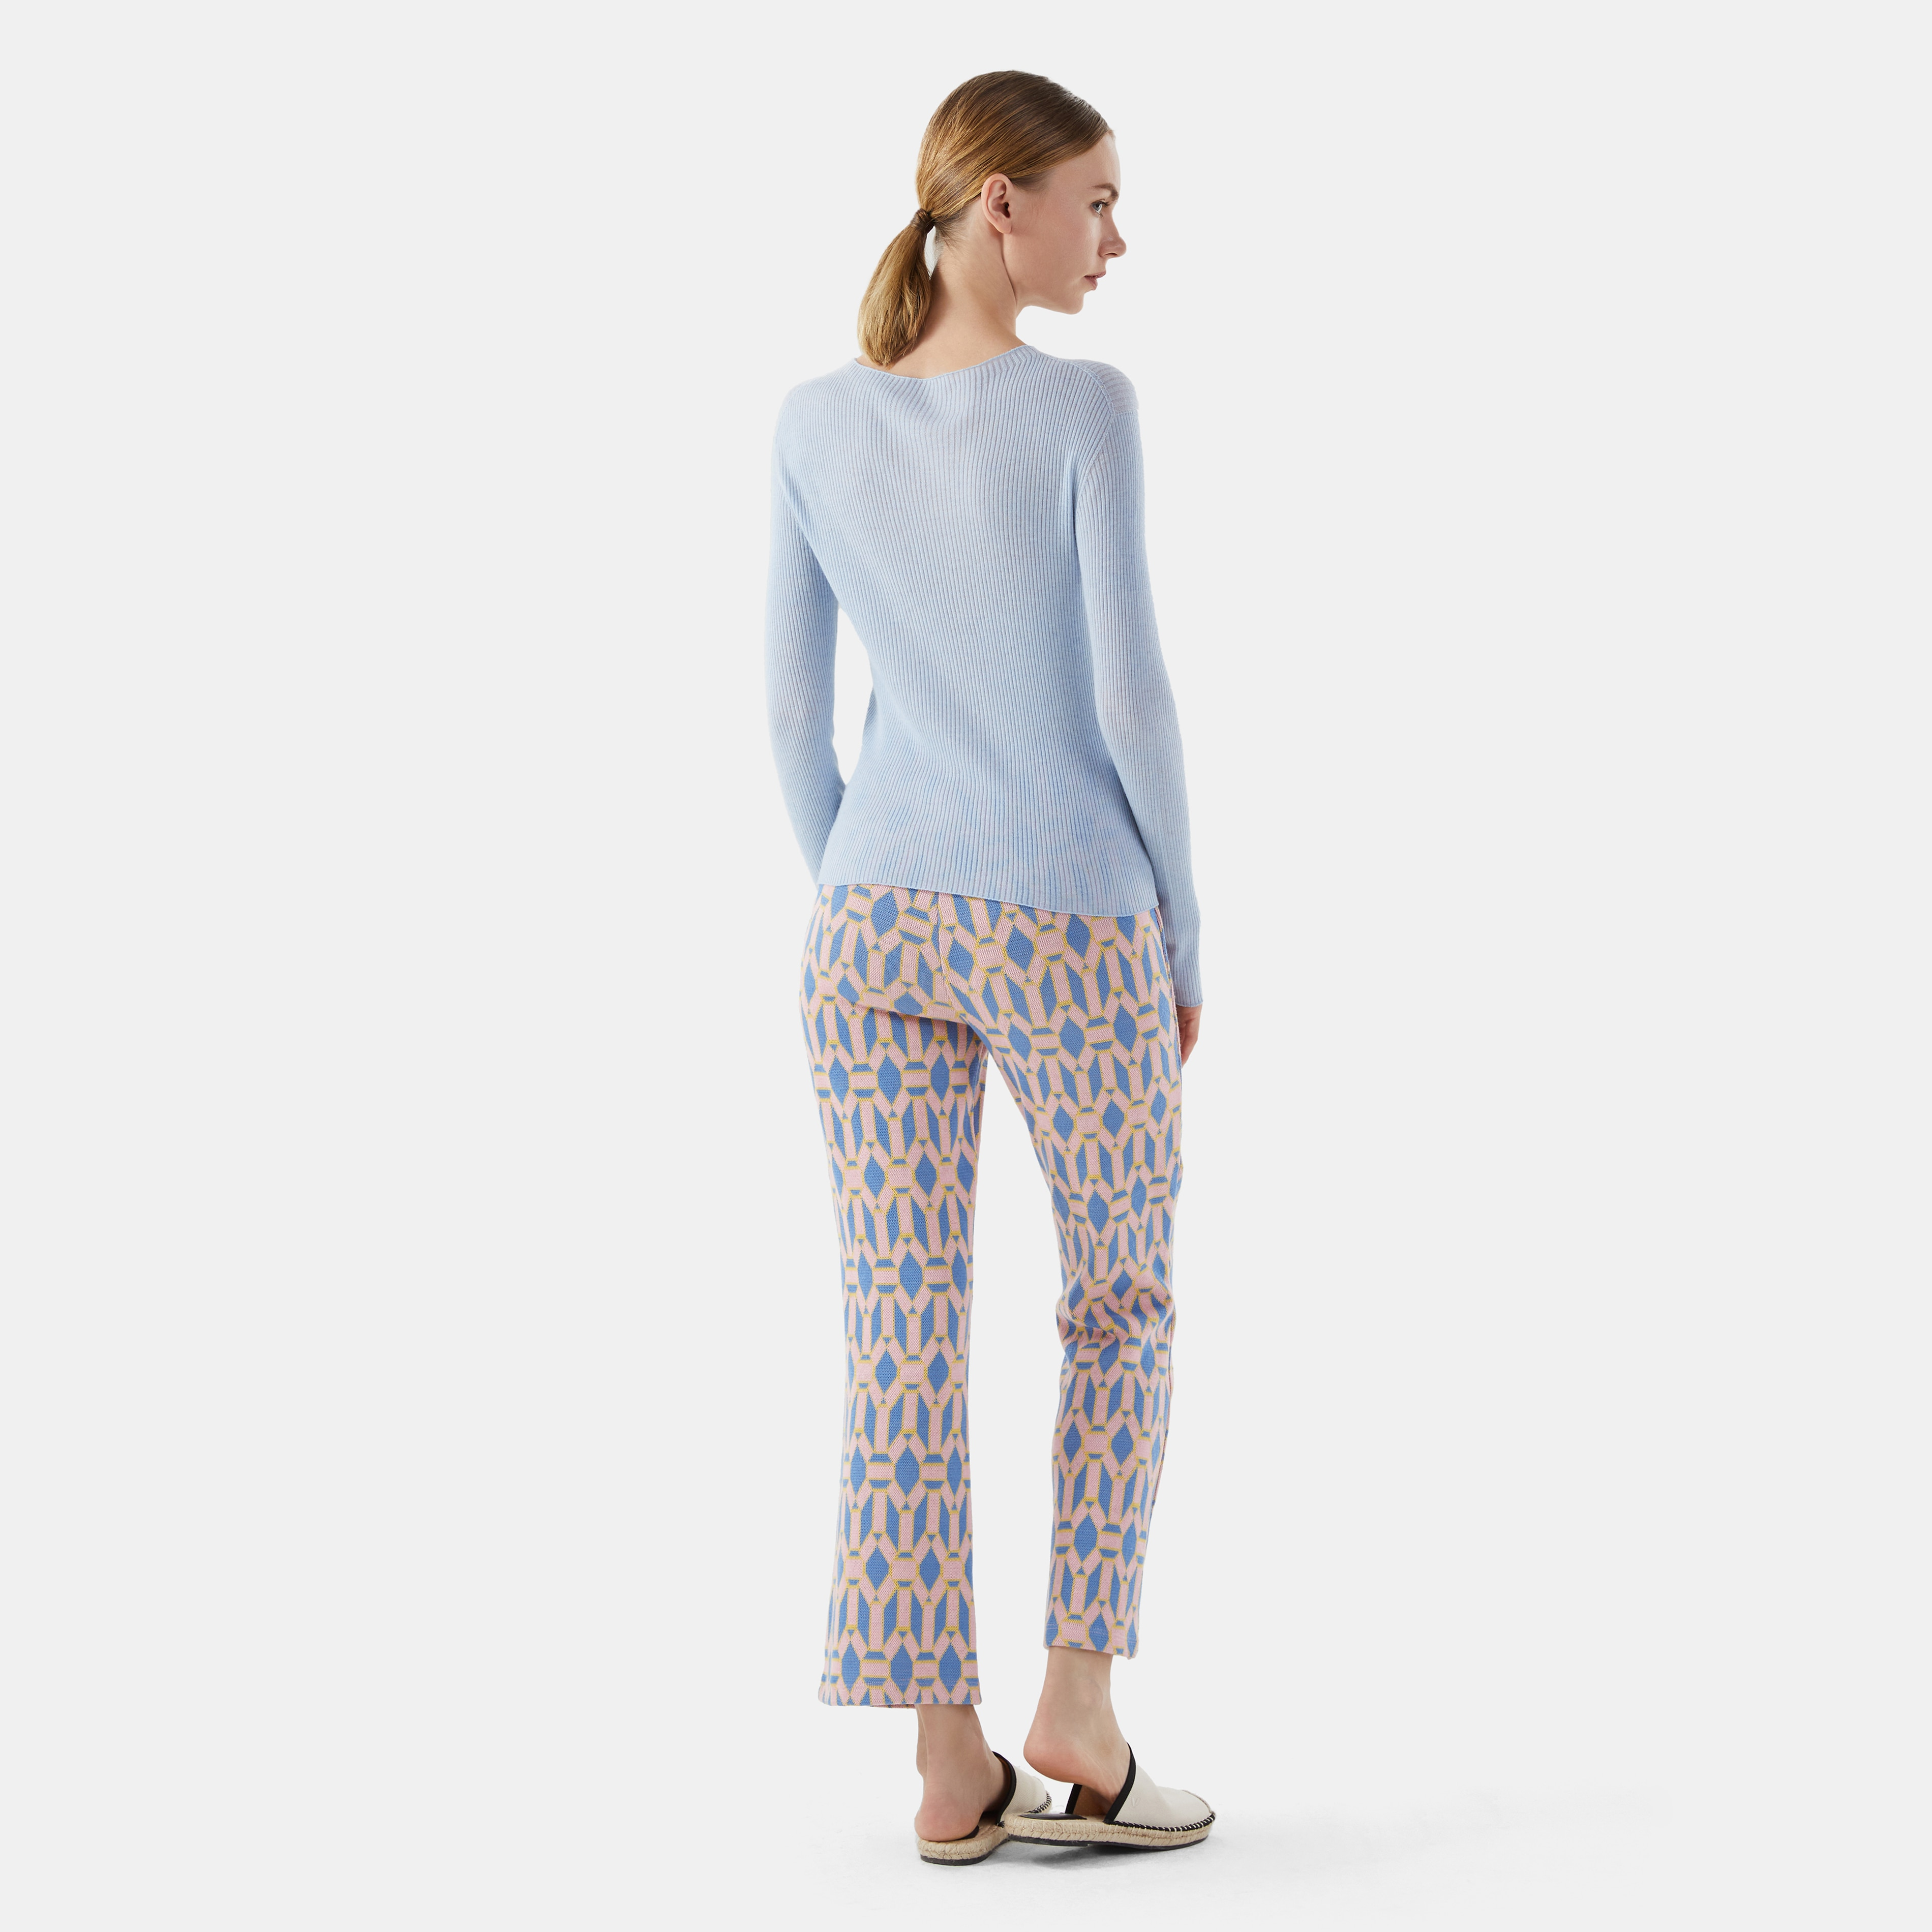 Cashmere Top-Baby Blue - Baby Blue S